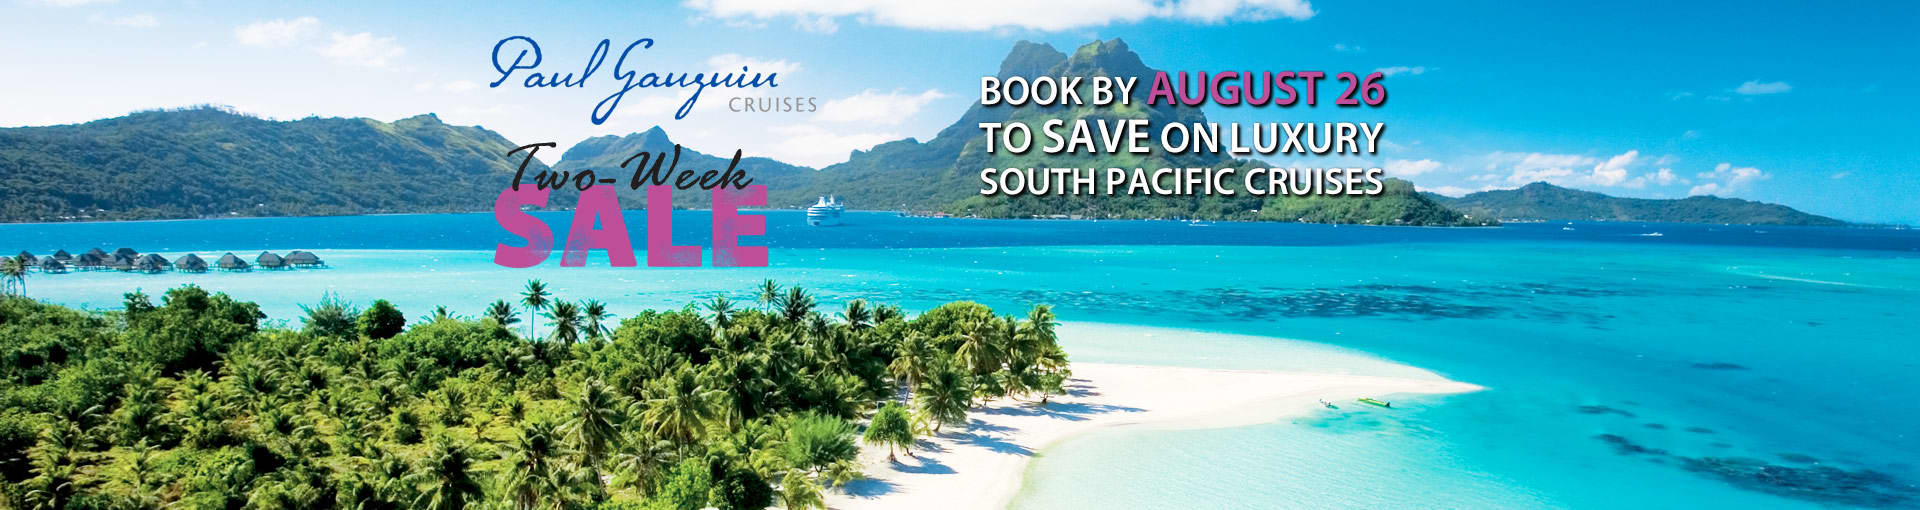 Paul Gauguin Cruises: 2-Week Sale for the South Pacific